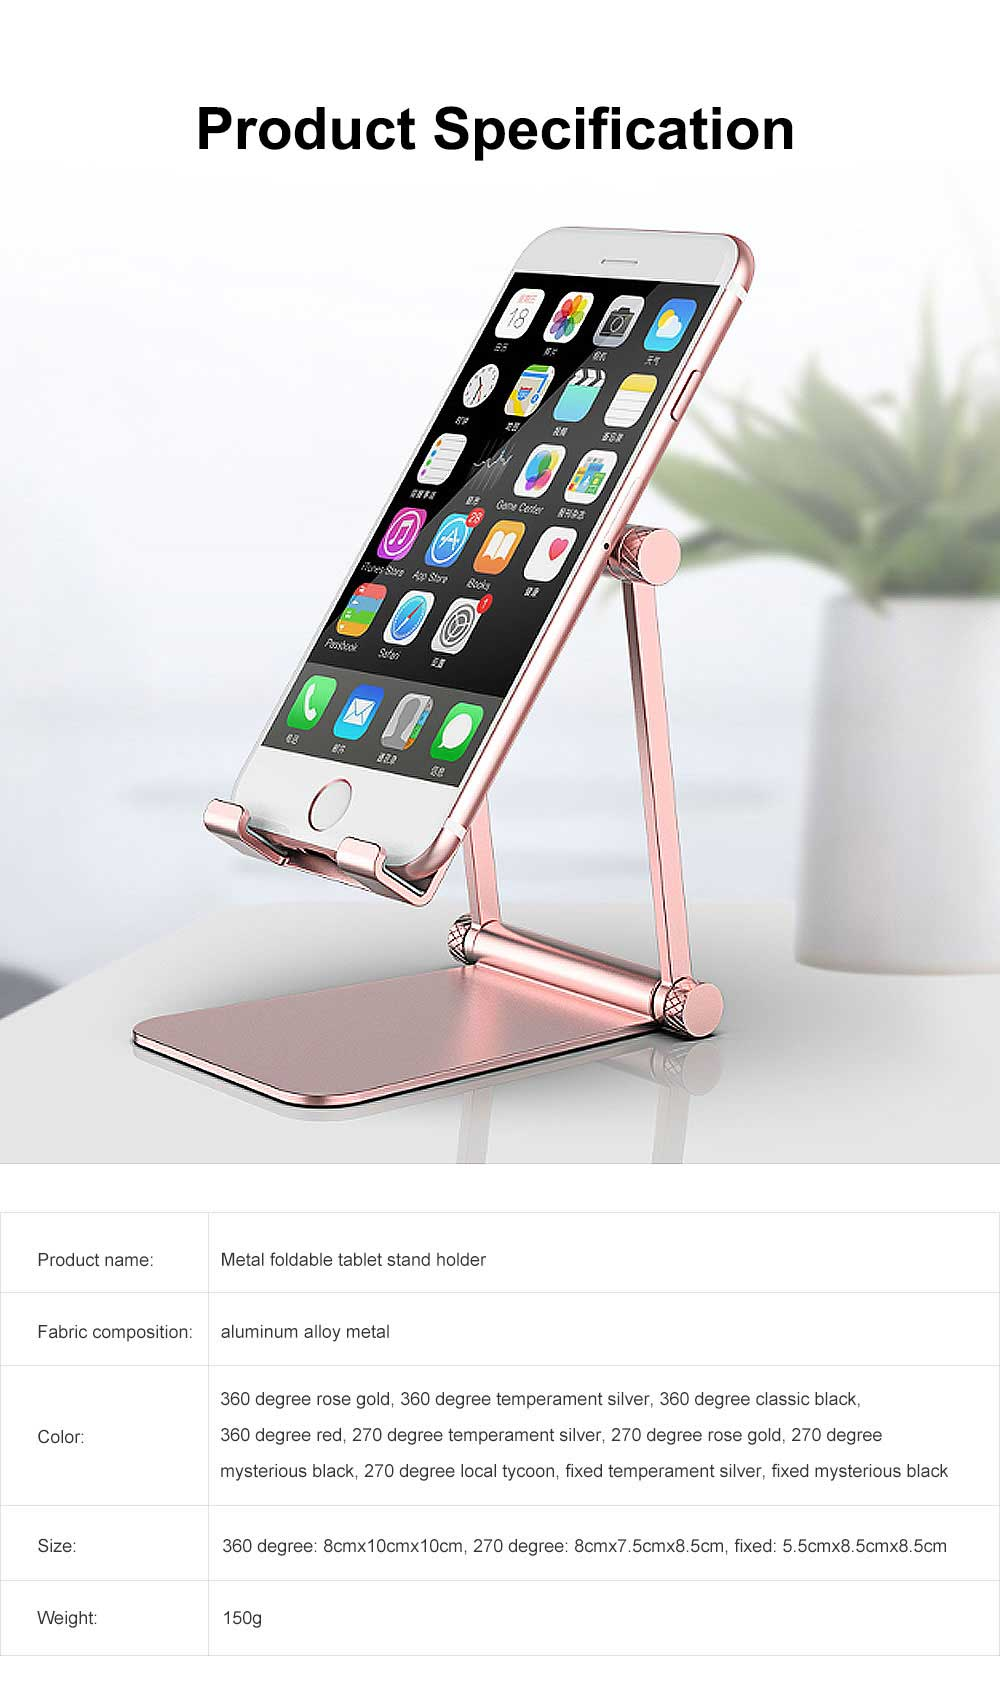 Aluminum Alloy Metal Flexable Tablet Phone Stand Holder, Desktop Foldable Adjustable Kickstand for Universal 8